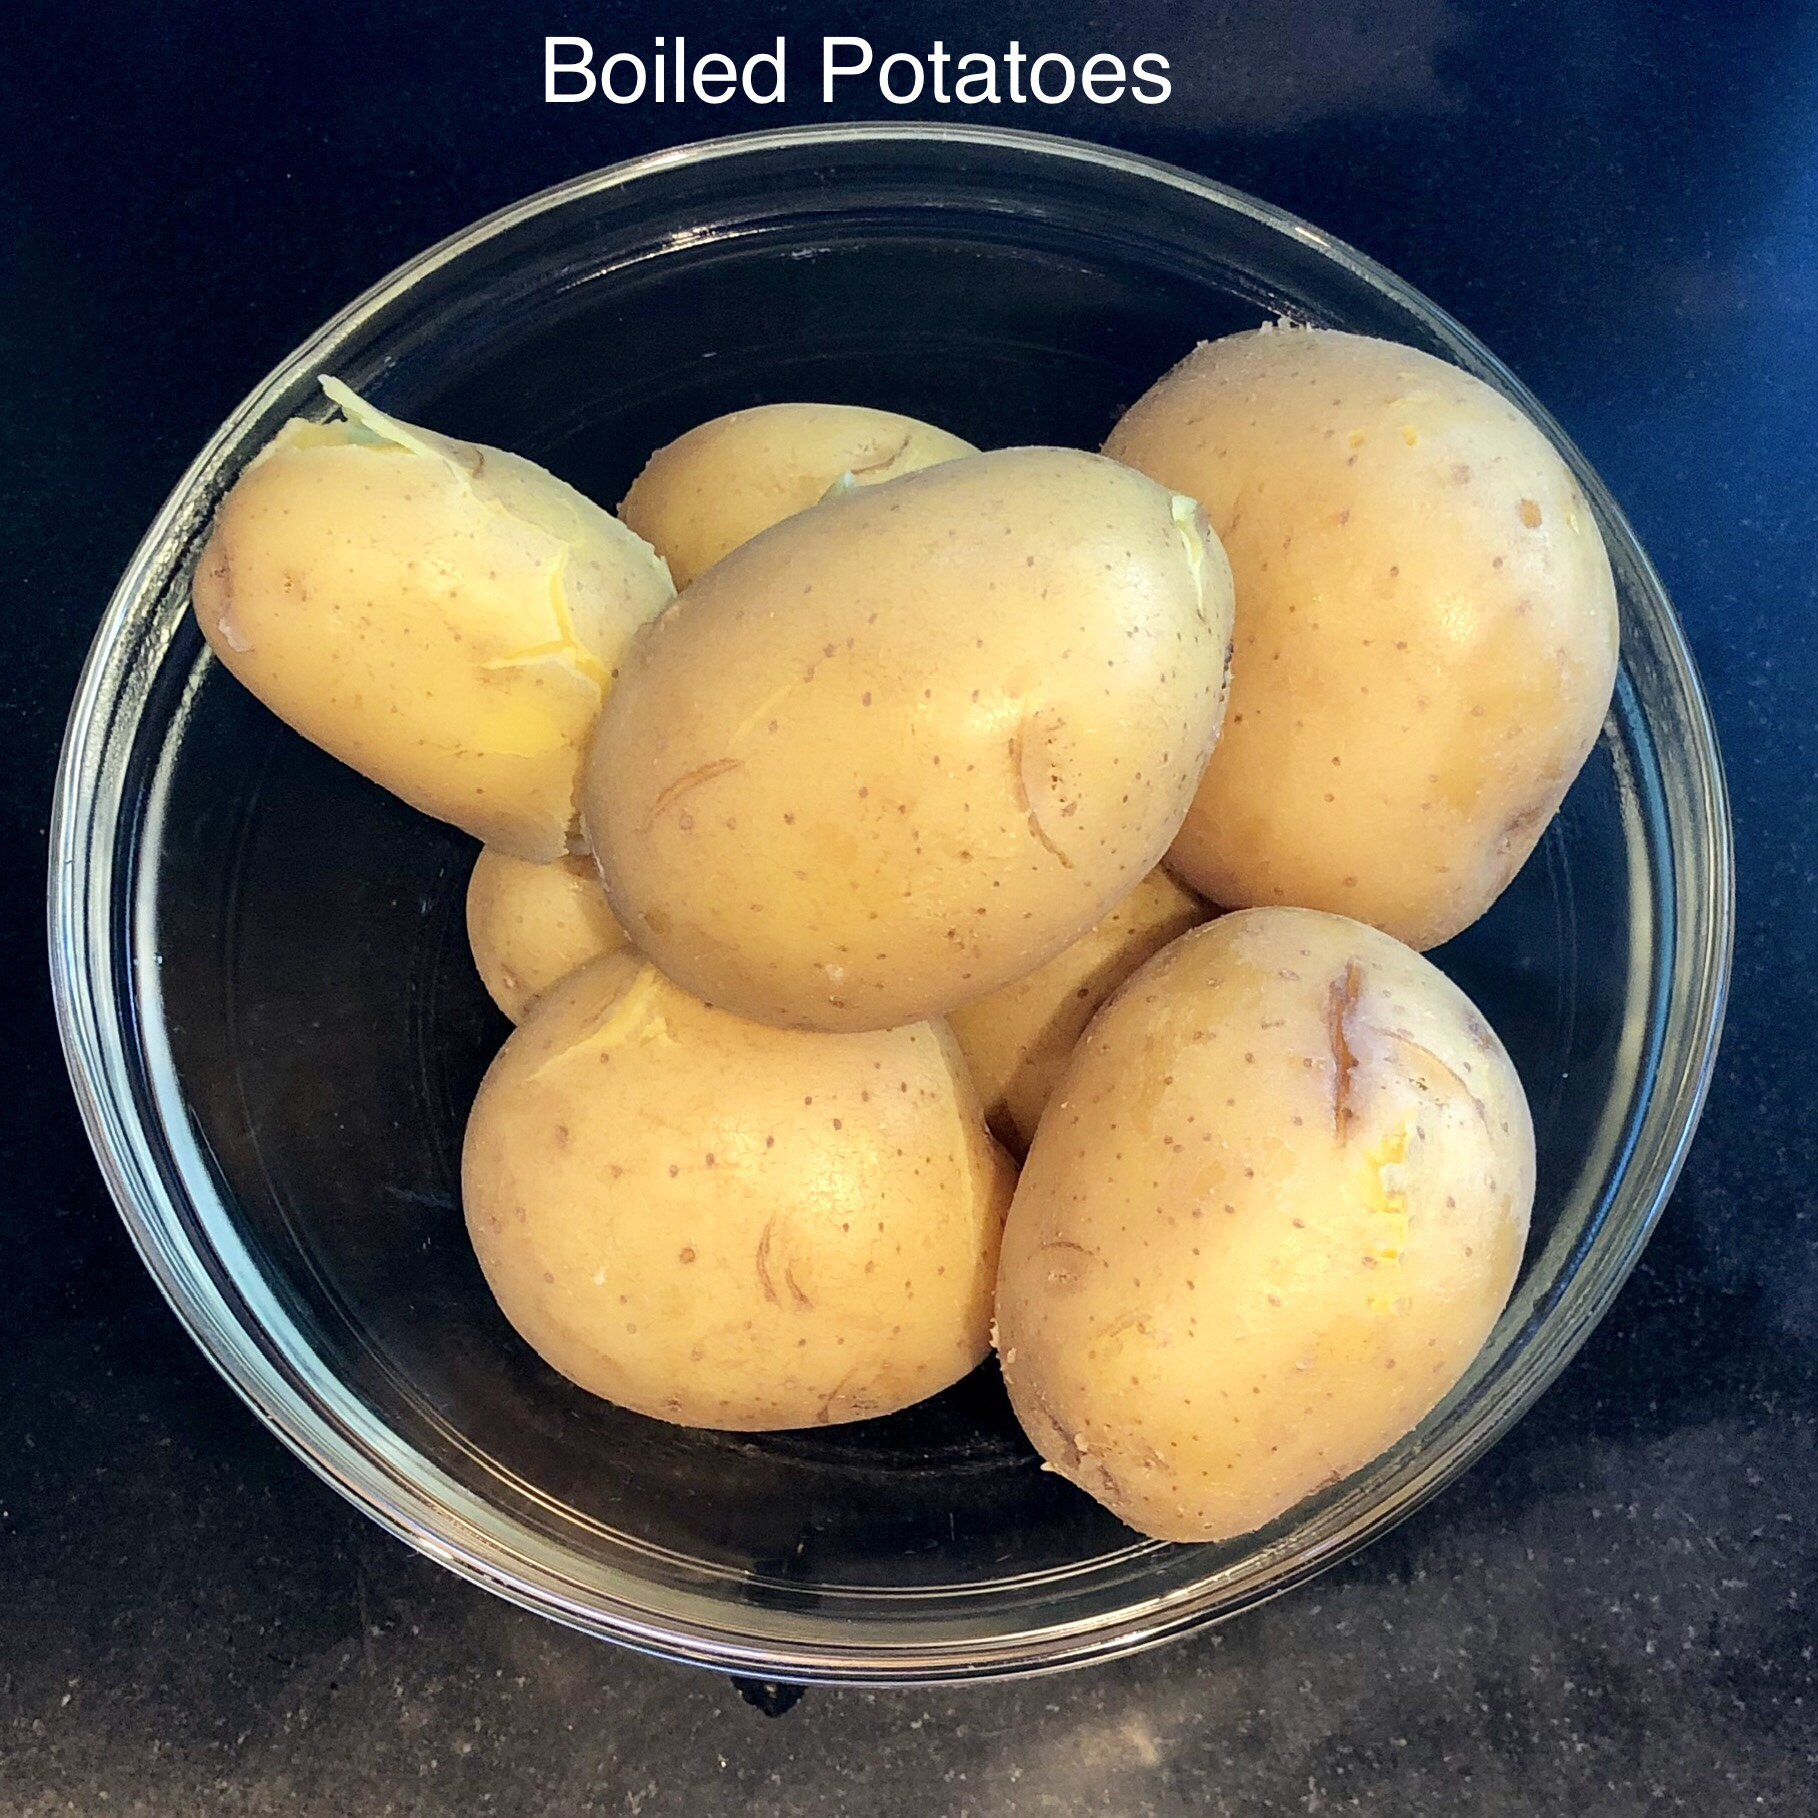 9. Boil the potatoes with skins on. Be careful not to overcook them. If they're different sizes, you may have to remove the smaller ones before the larger ones, as they will cook more quickly. Test them with a fork to check their progress.